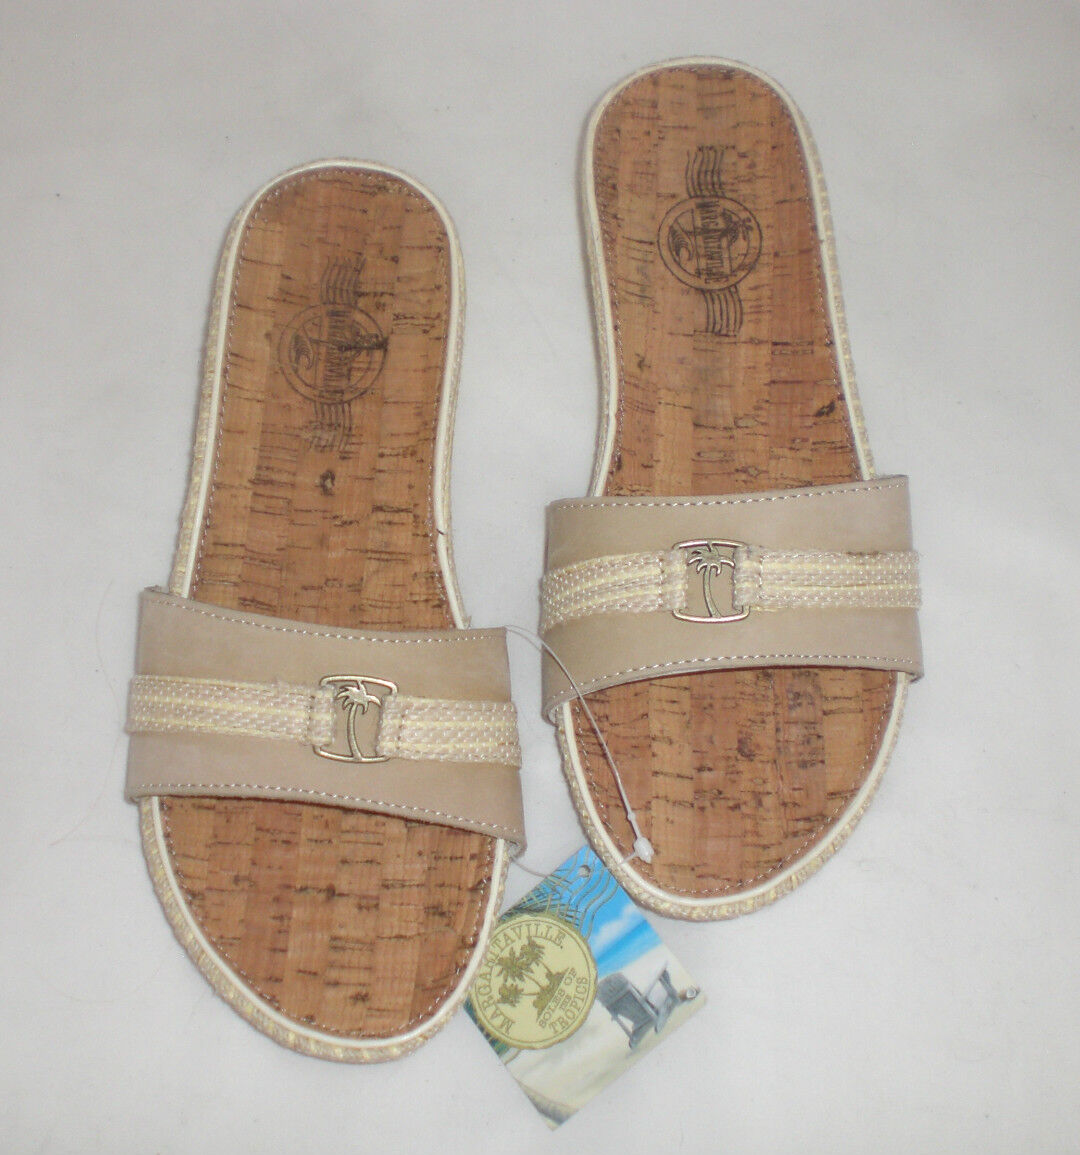 Margaritaville Newport Slide sandals leather sz 6 Md NEW